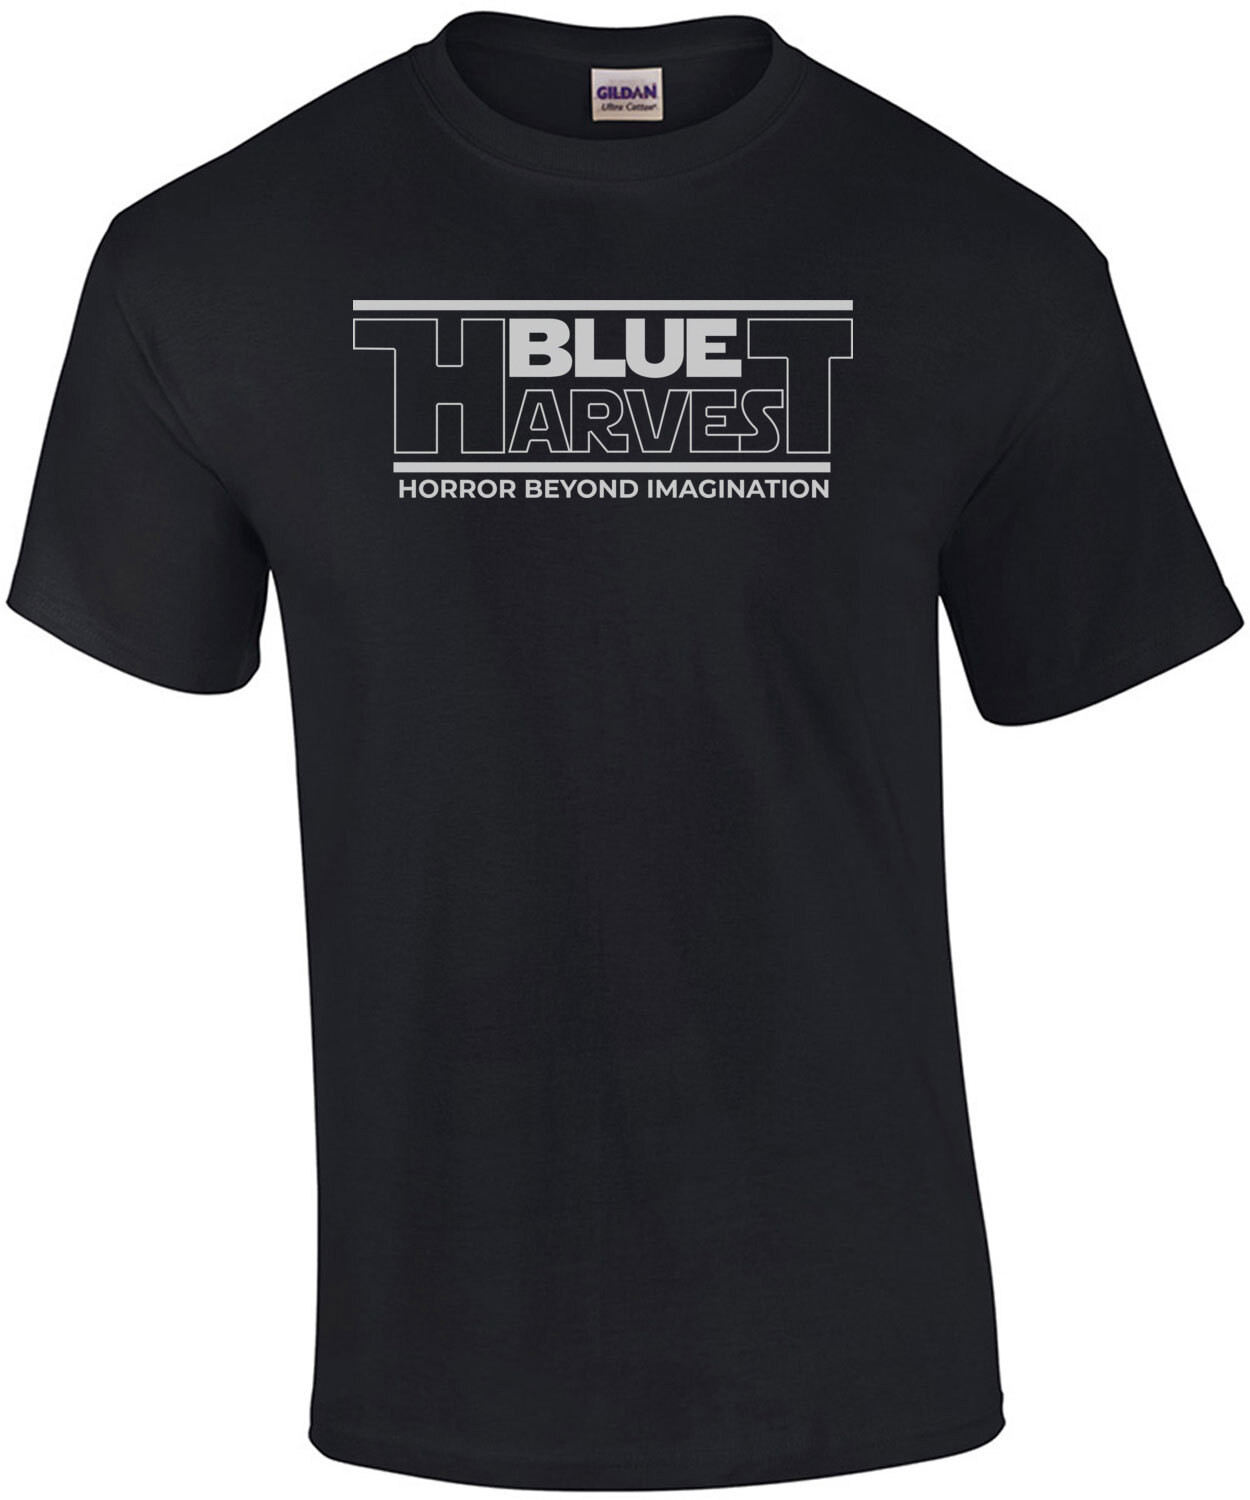 Blue Harvest - Horror beyond Imagination - Star Wars episode VI return of the jedi  - Star Wars 80's T-Shirt